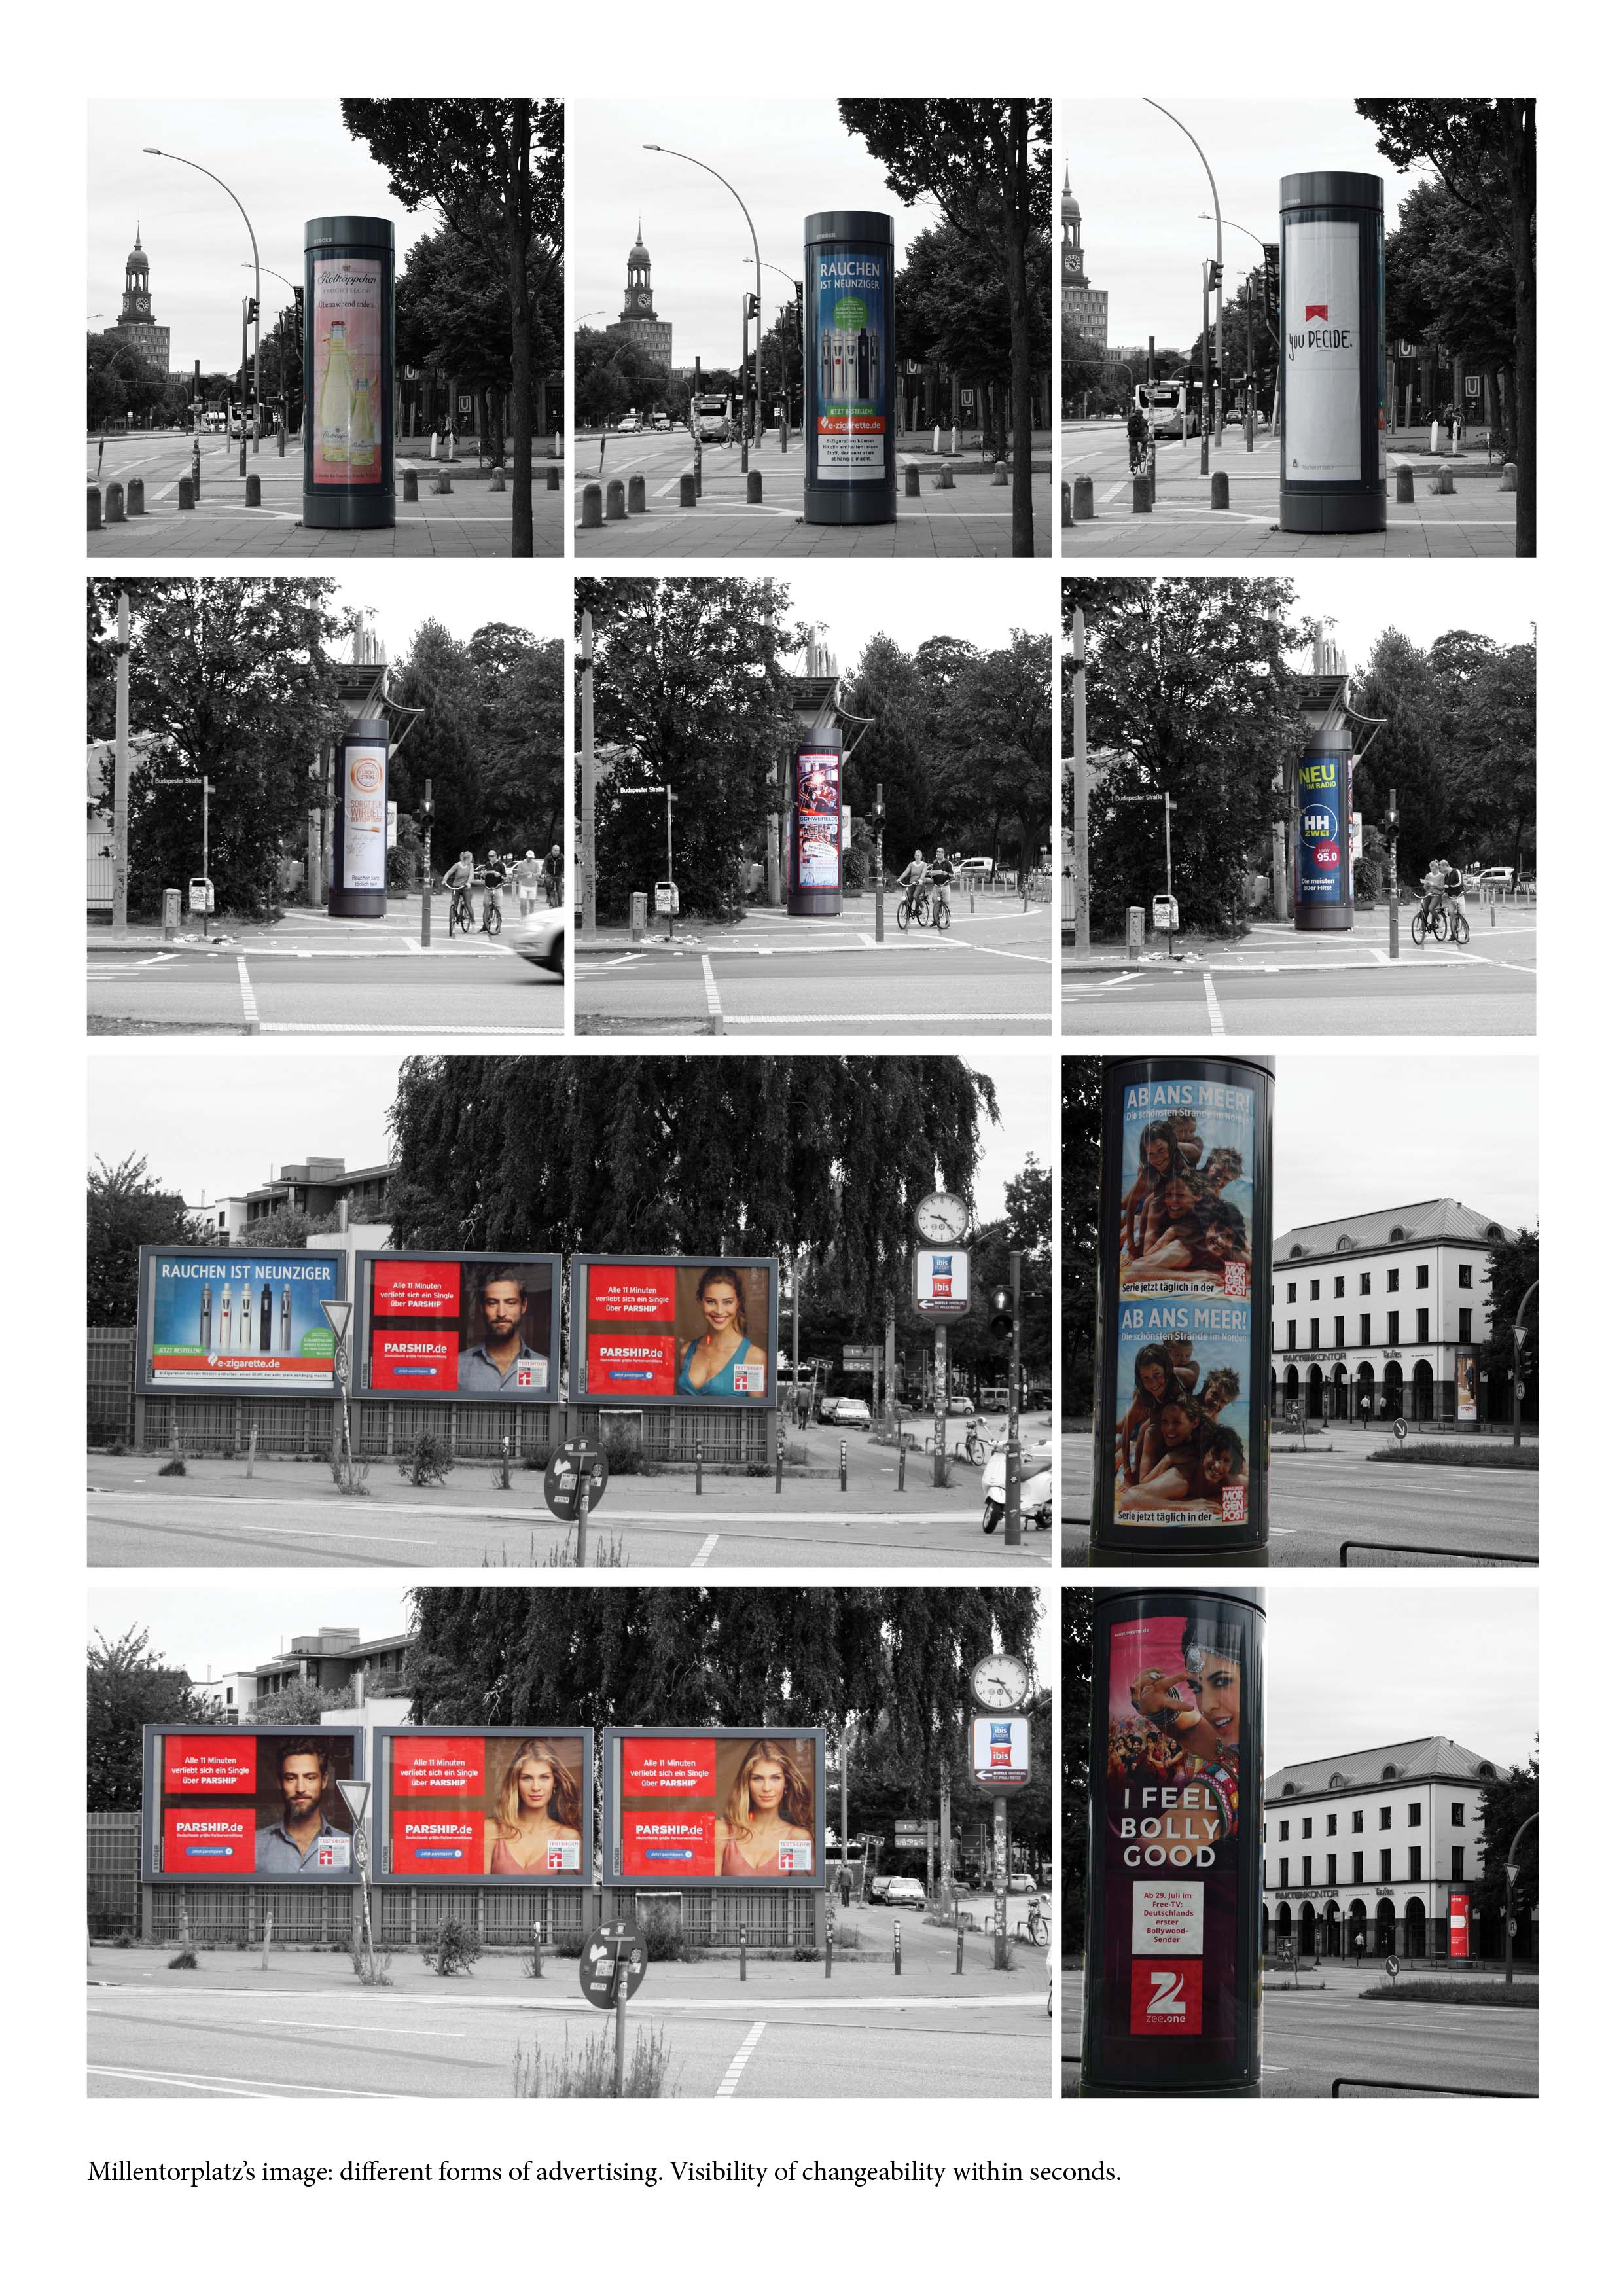 http://www.ud.hcu-hamburg.de/projects/student-projects/advertising-in-relationship-with-public-space-and-urban-planning-focus-hamburg-mitte-2016